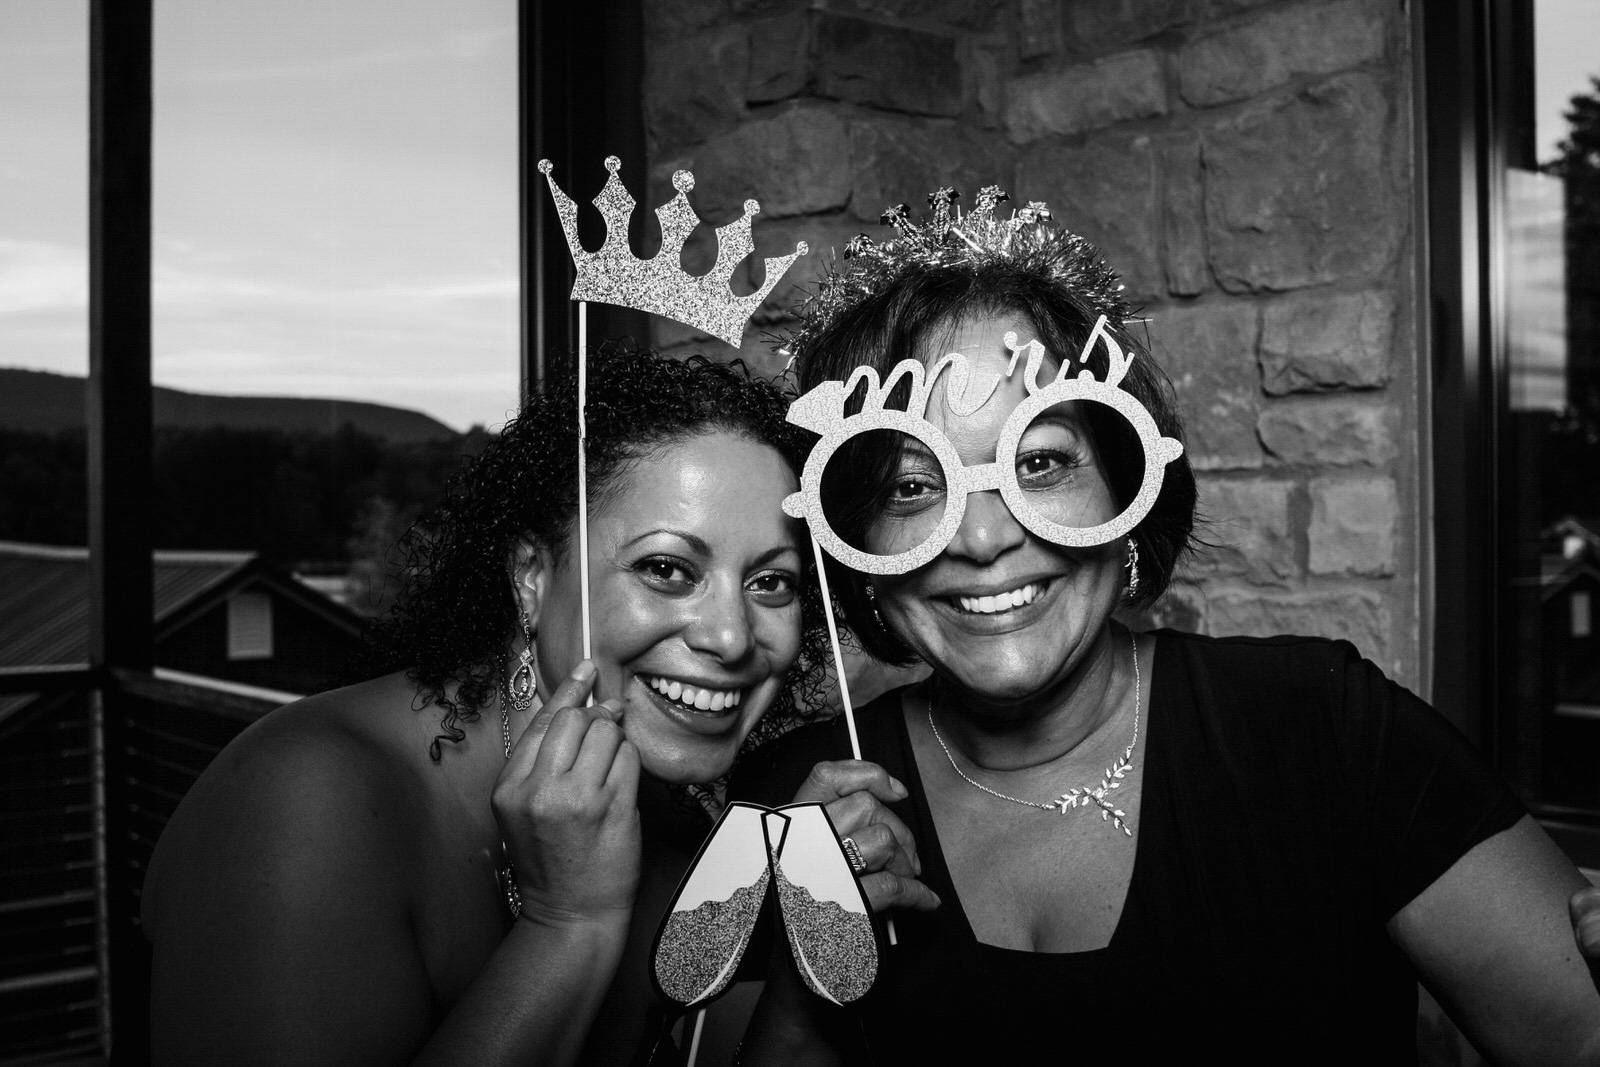 Vanessa-Jonathan-Wedding-Photo-Booth-35.jpg